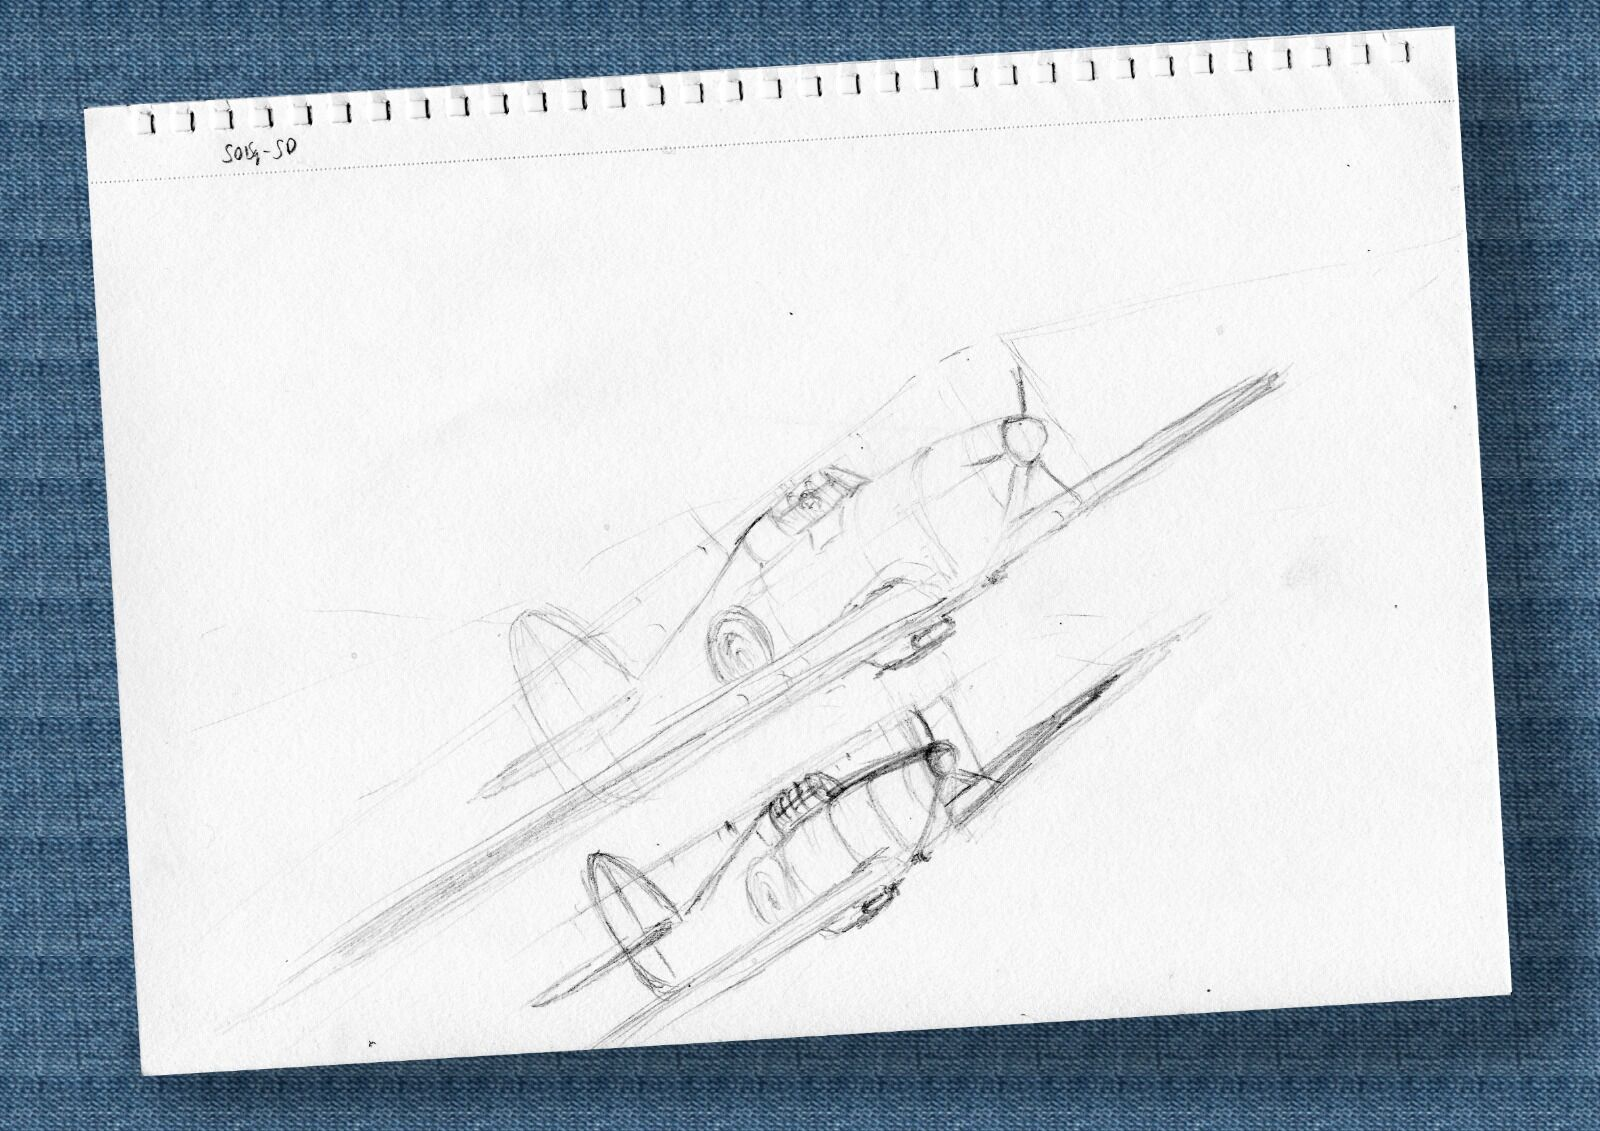 Spitfire and Hurricane sketch